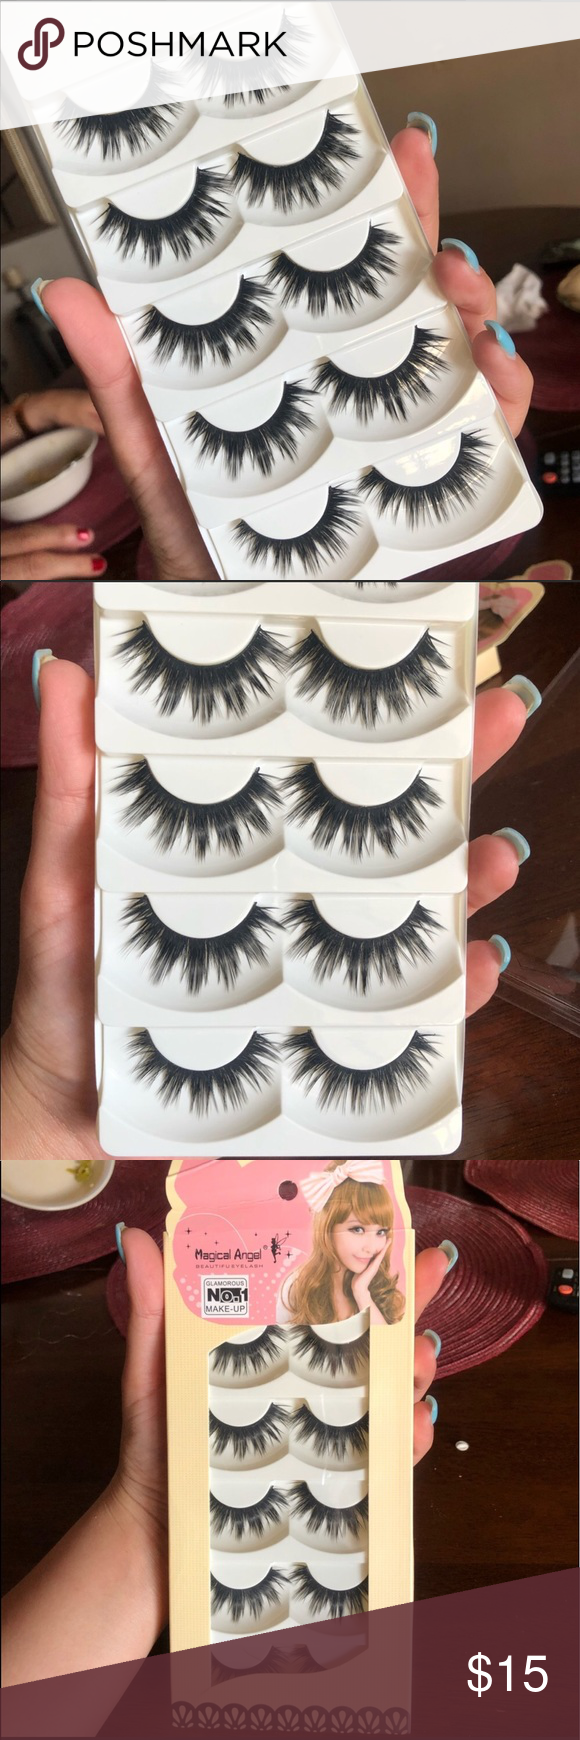 0fb3d2856d5 5 Pairs Mink Long Eyelashes New in Box❗ They are Beautiful😍 Soft Lashes,  Great Quality, Cute eyelook Makeup False Eyelashes